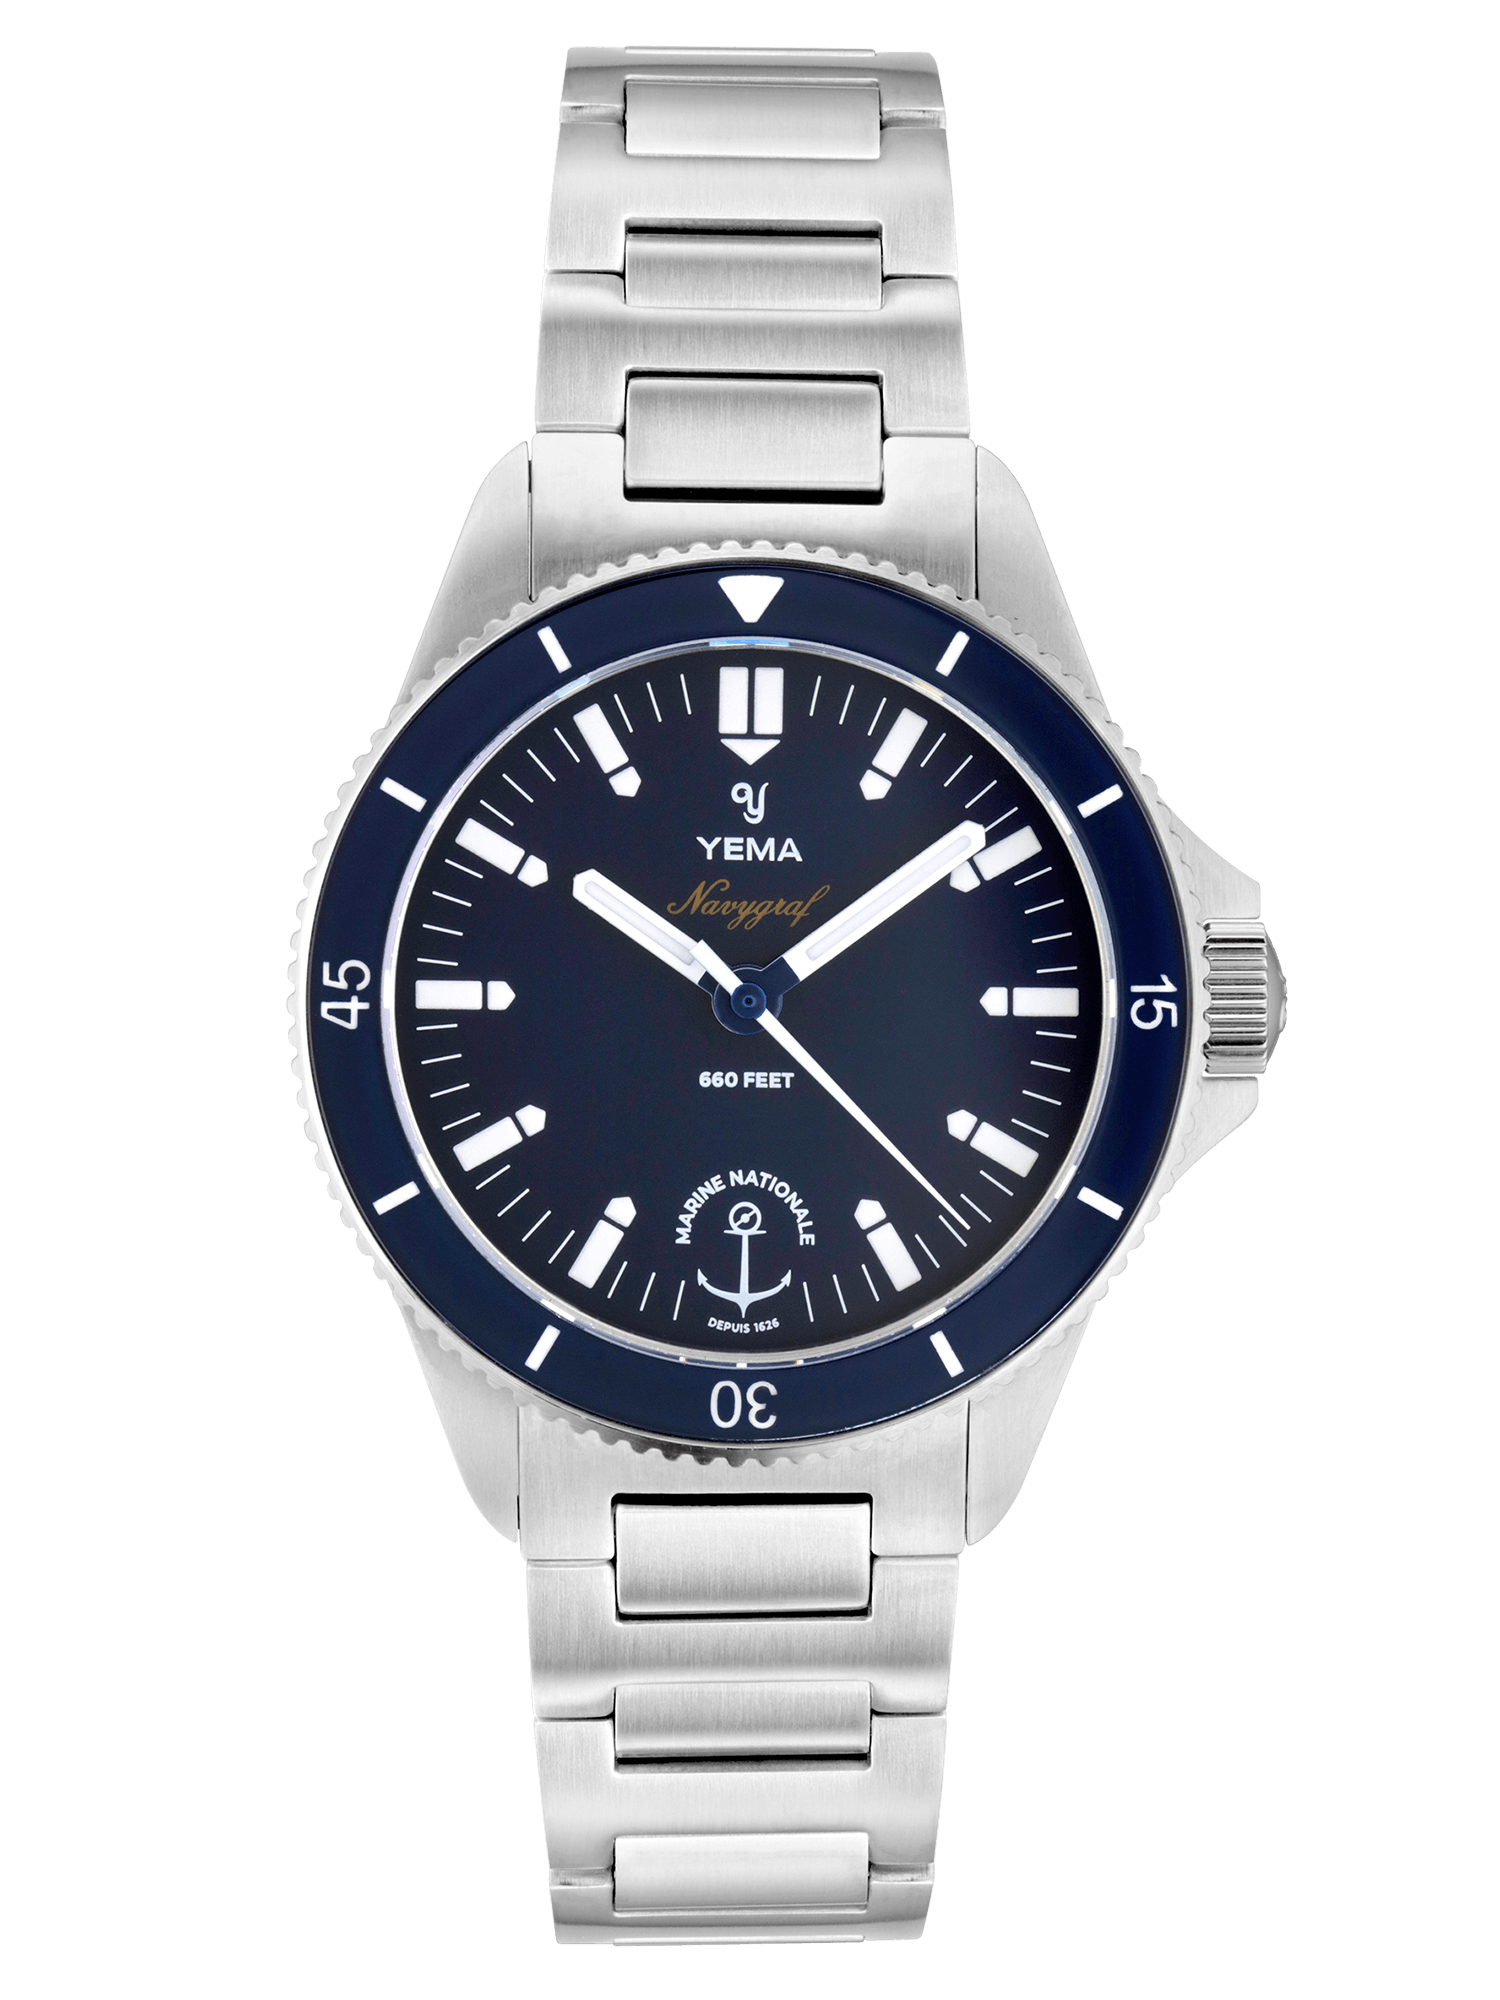 YEMA Navygraf Marine nationale Quartz